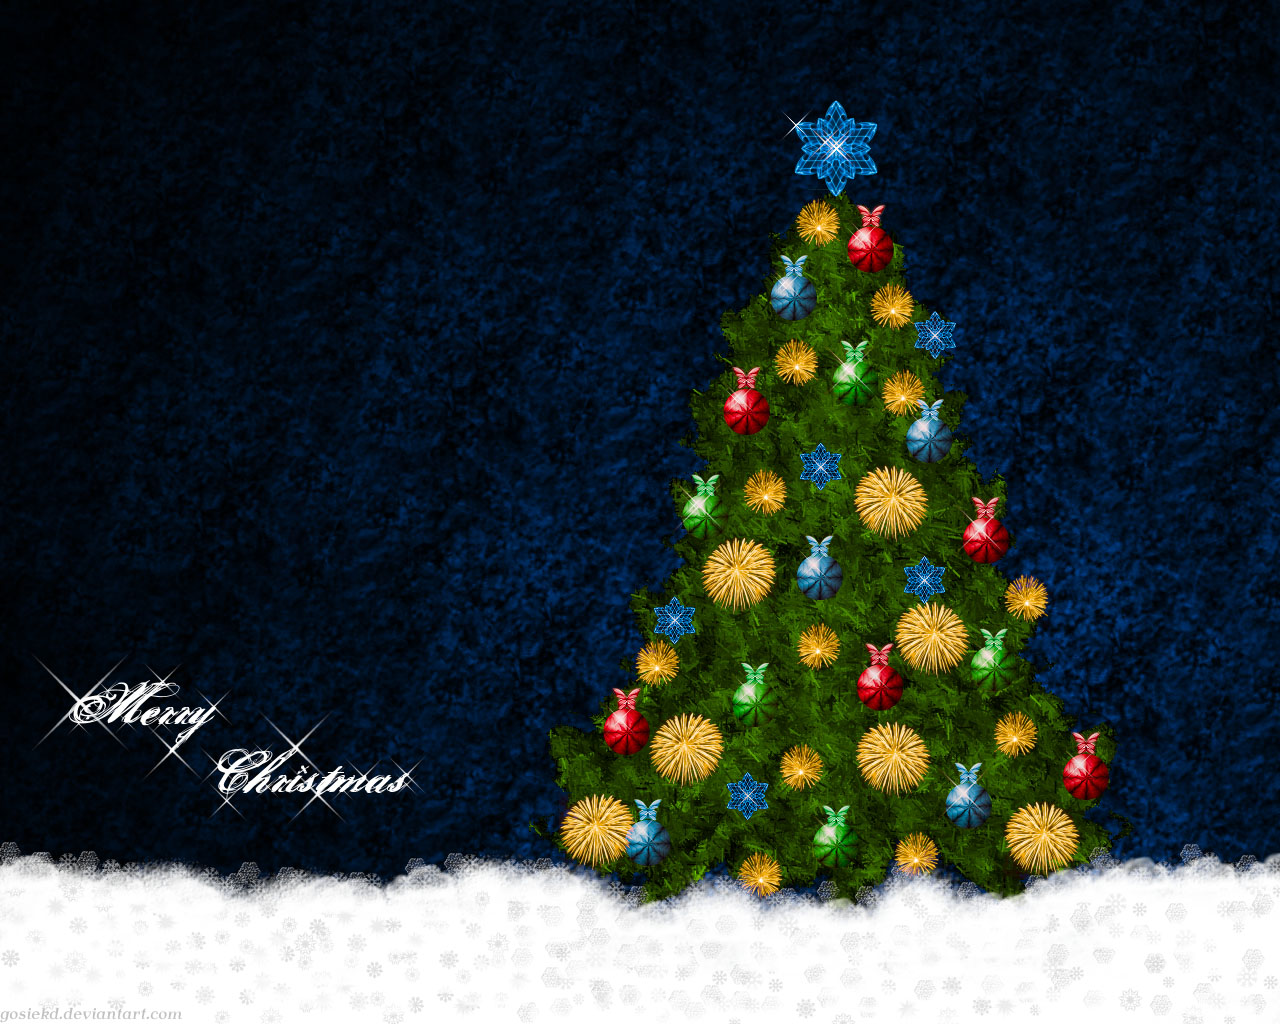 40 free christmas wallpapers hd quality 2012 collection House beautiful christmas trees